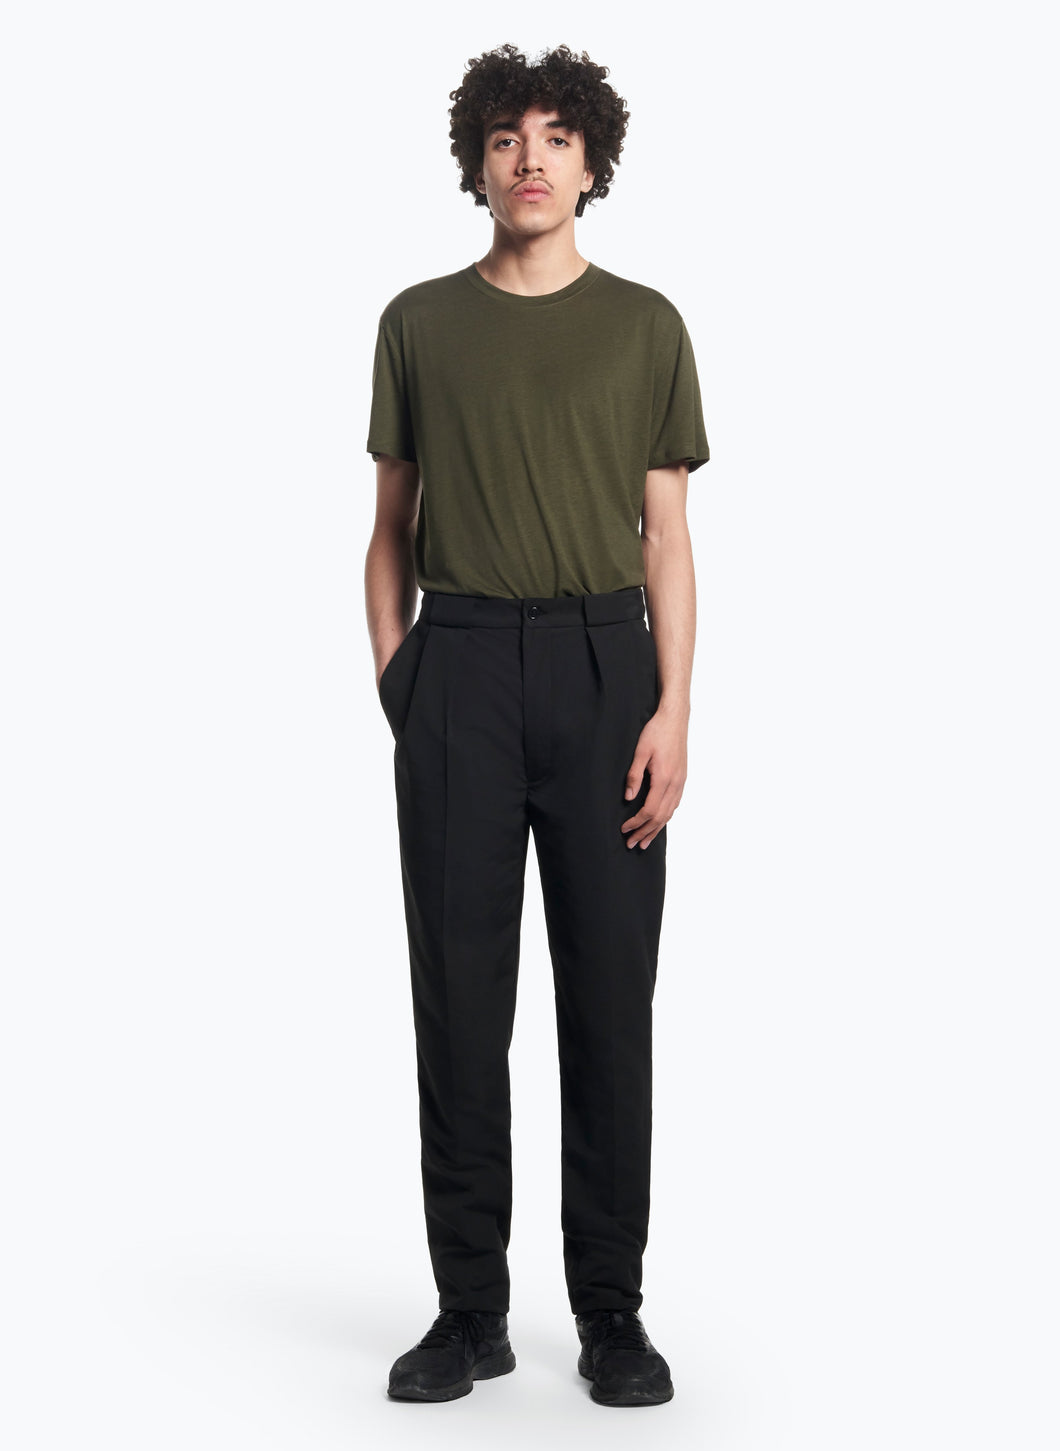 Pants with Passers-Pleats in Black Microfiber